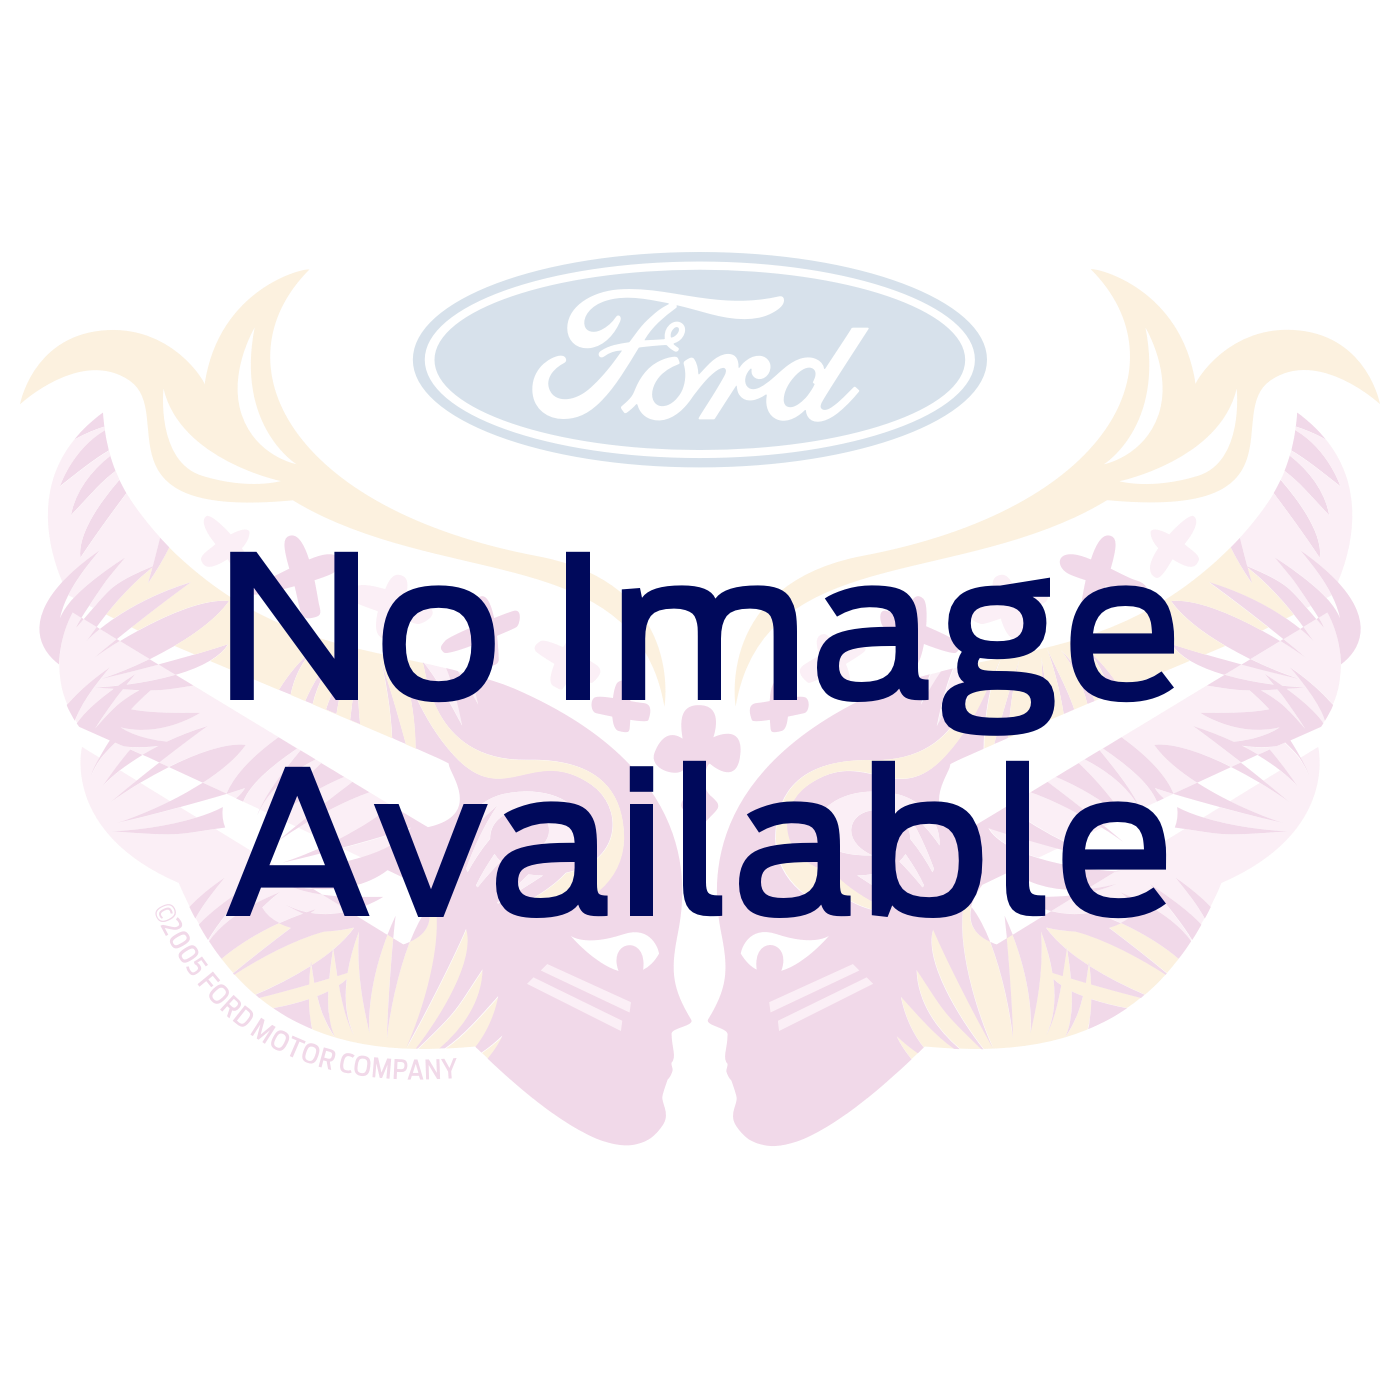 https://www.warriorsinpink.ford.com/media/catalog/product/cache/1/image/9df78eab33525d08d6e5fb8d27136e95/atl_susan_fulginiti_01_1.jpg